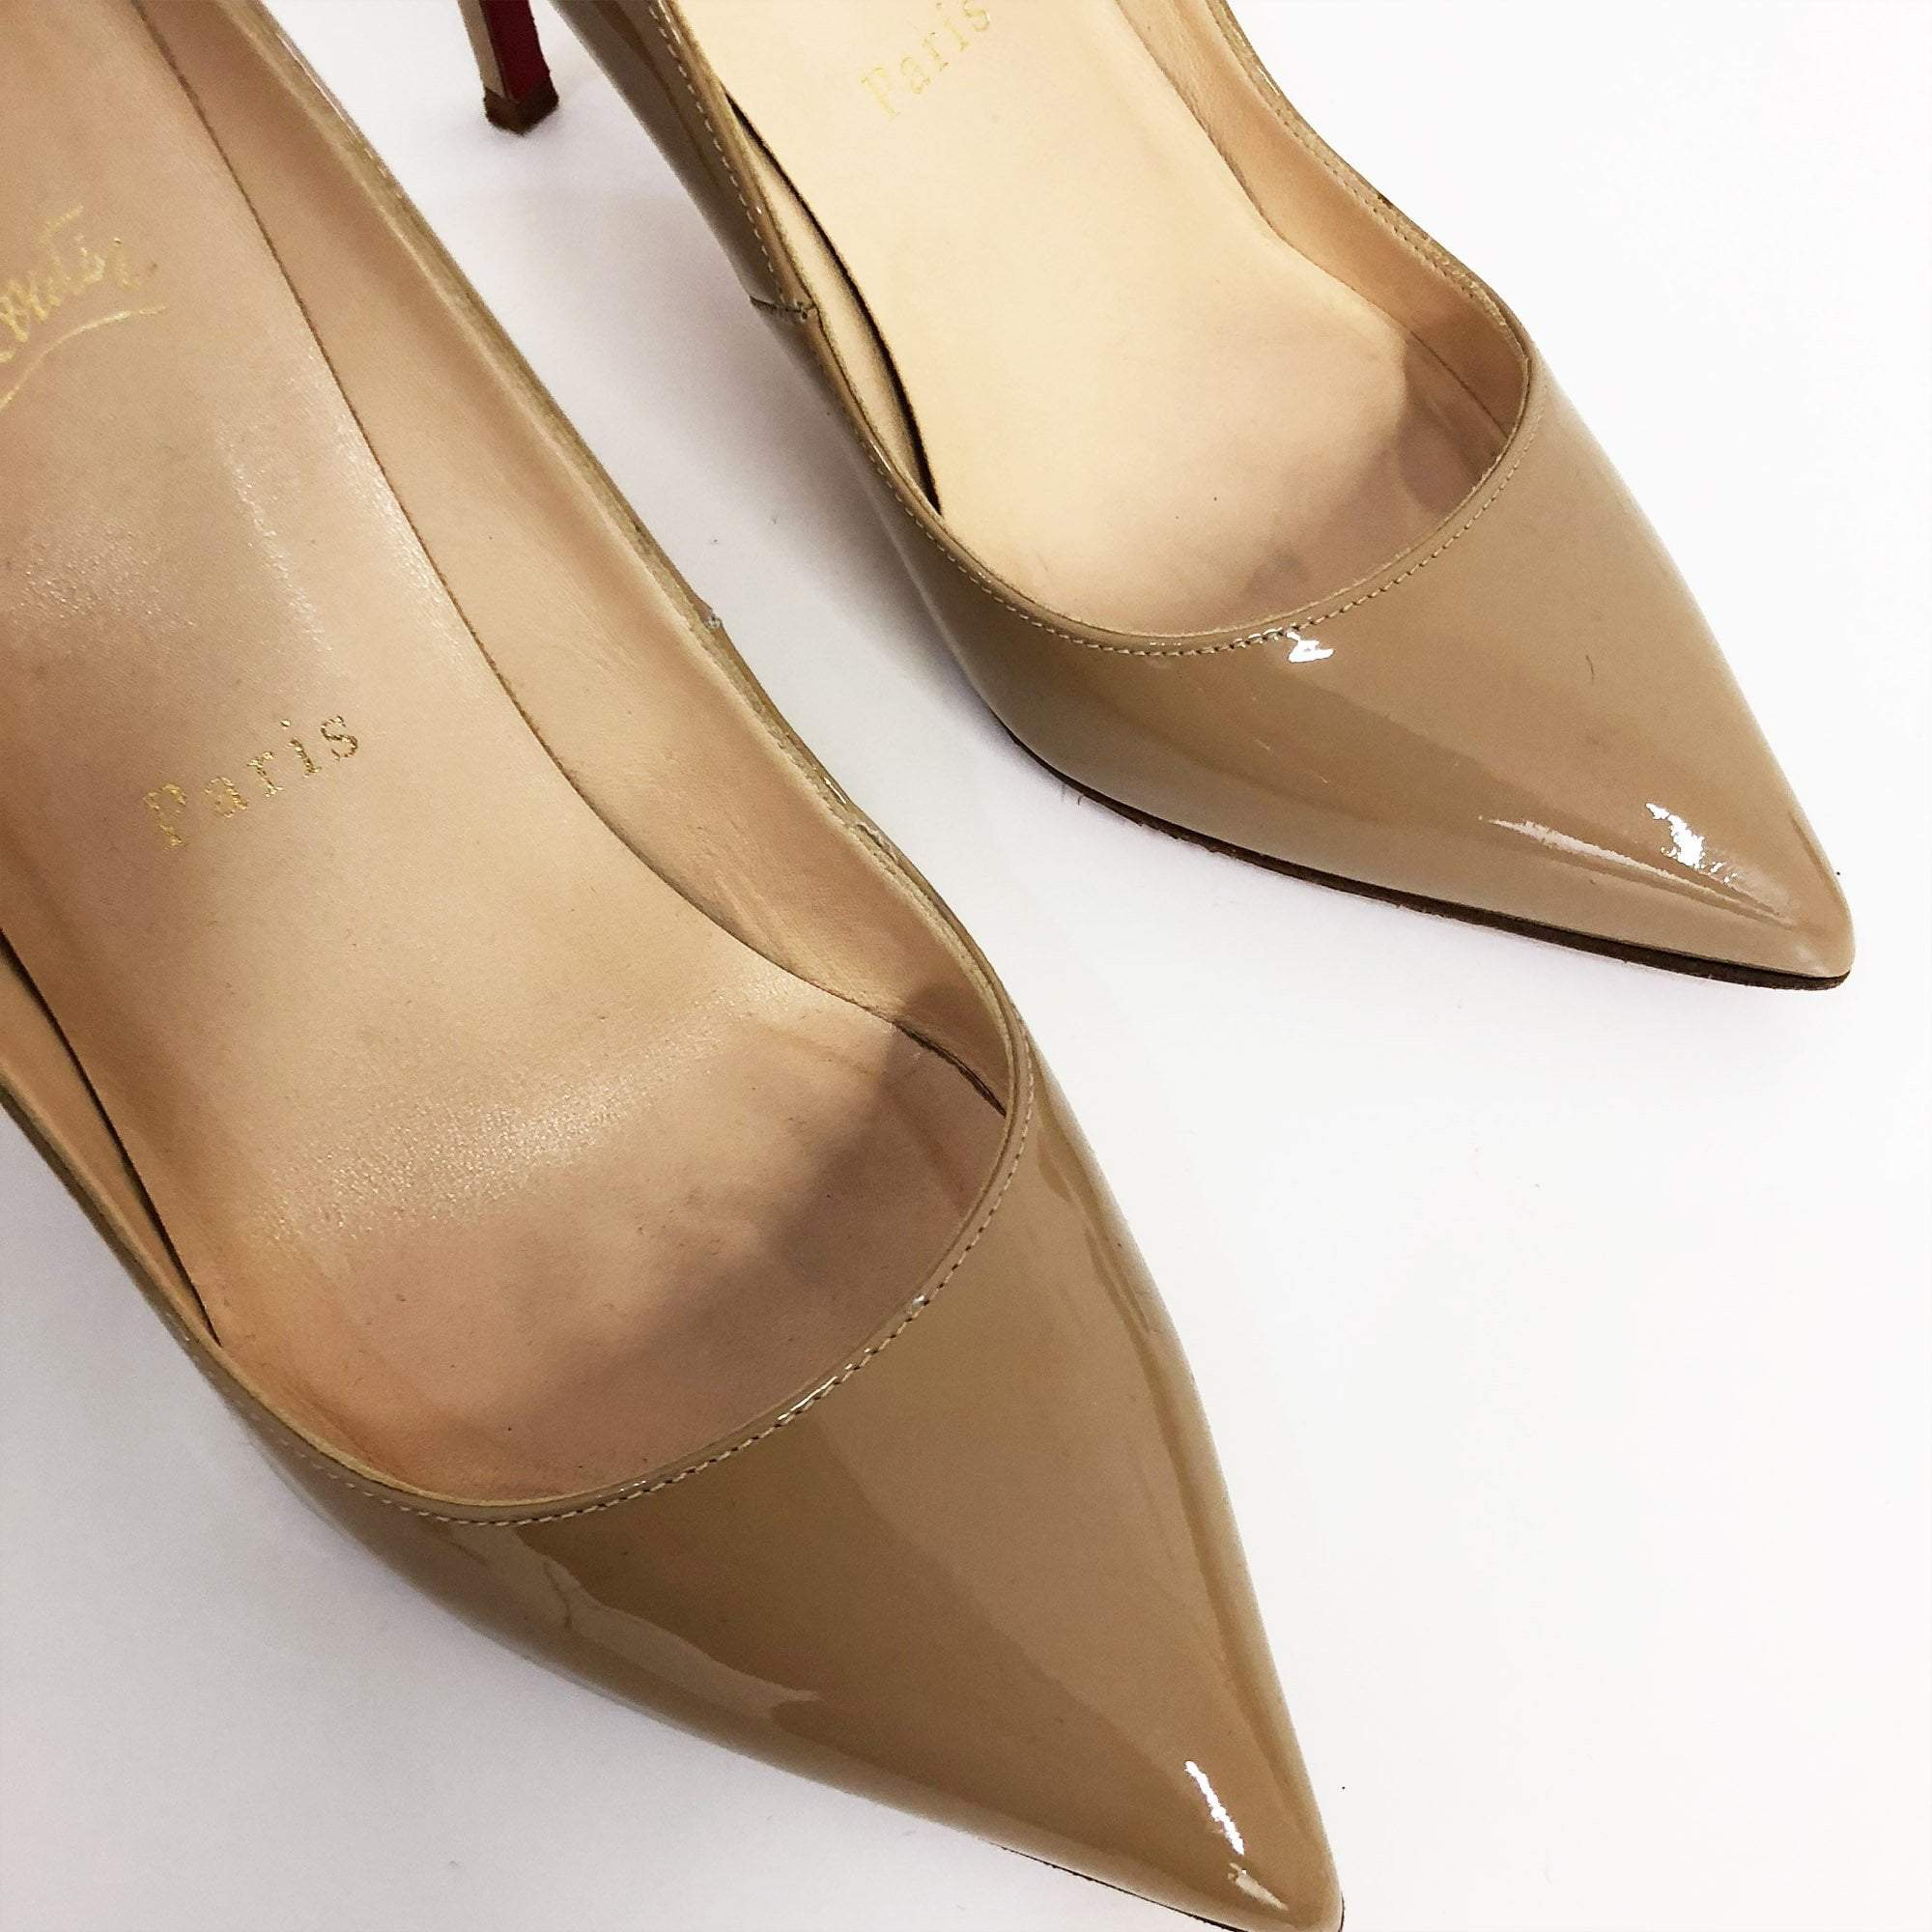 Christian Louboutin Nude Patent Pumps